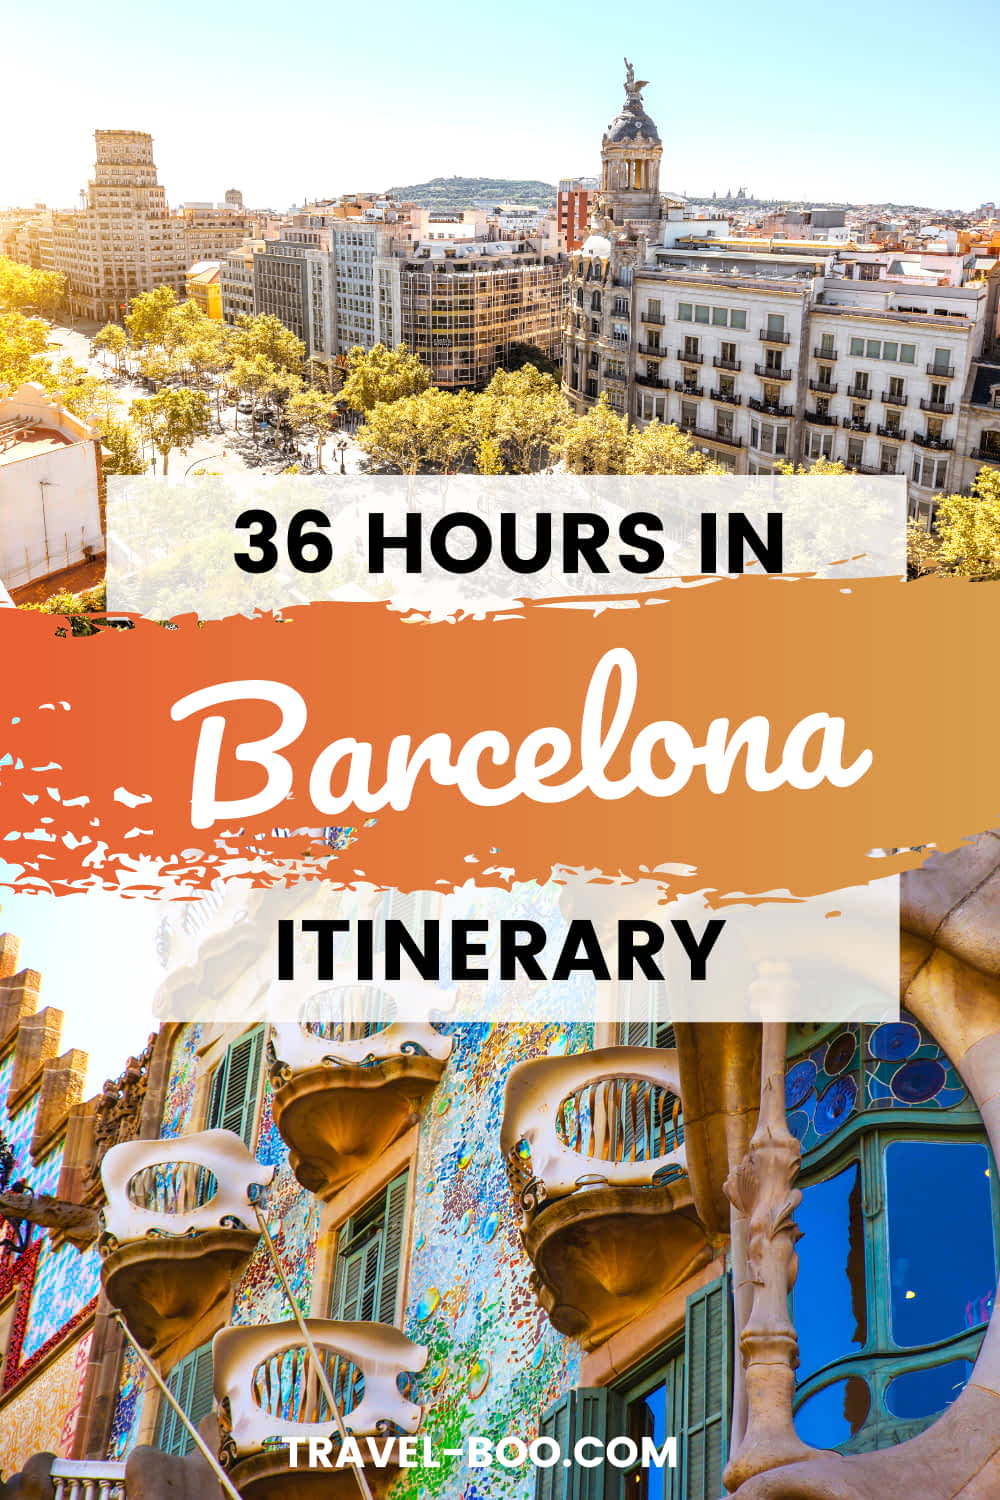 Plan on visiting Barcelona for just under 2 days? Check out our ultimate 36 Hours in Barcelona itinerary! Barcelona Spain, Barcelona Spain Travel, Barcelona Travel Guide, Spain Travel Barcelona, Spain Travel, Spain Travel Guides, Barcelona Travel Tips. #barcelonatravel #spaintravel #barcelona